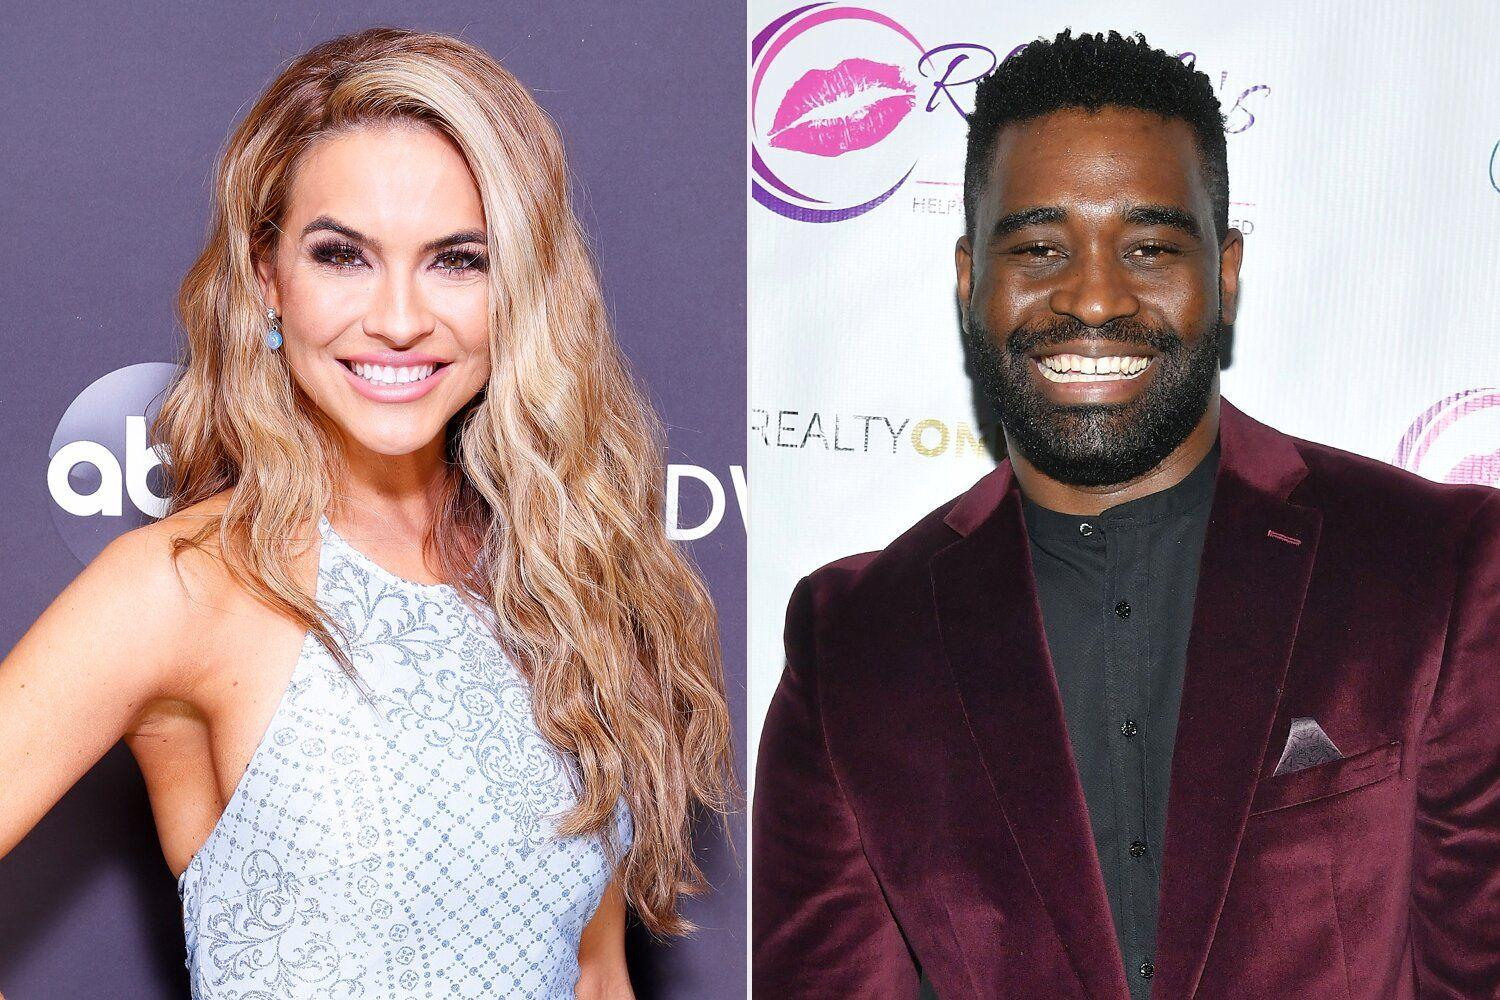 Chrishell Stause And Keo Motsepe - Source Says 'It's Just Clicking' Between Them After He Meets The Fam On Christmas!